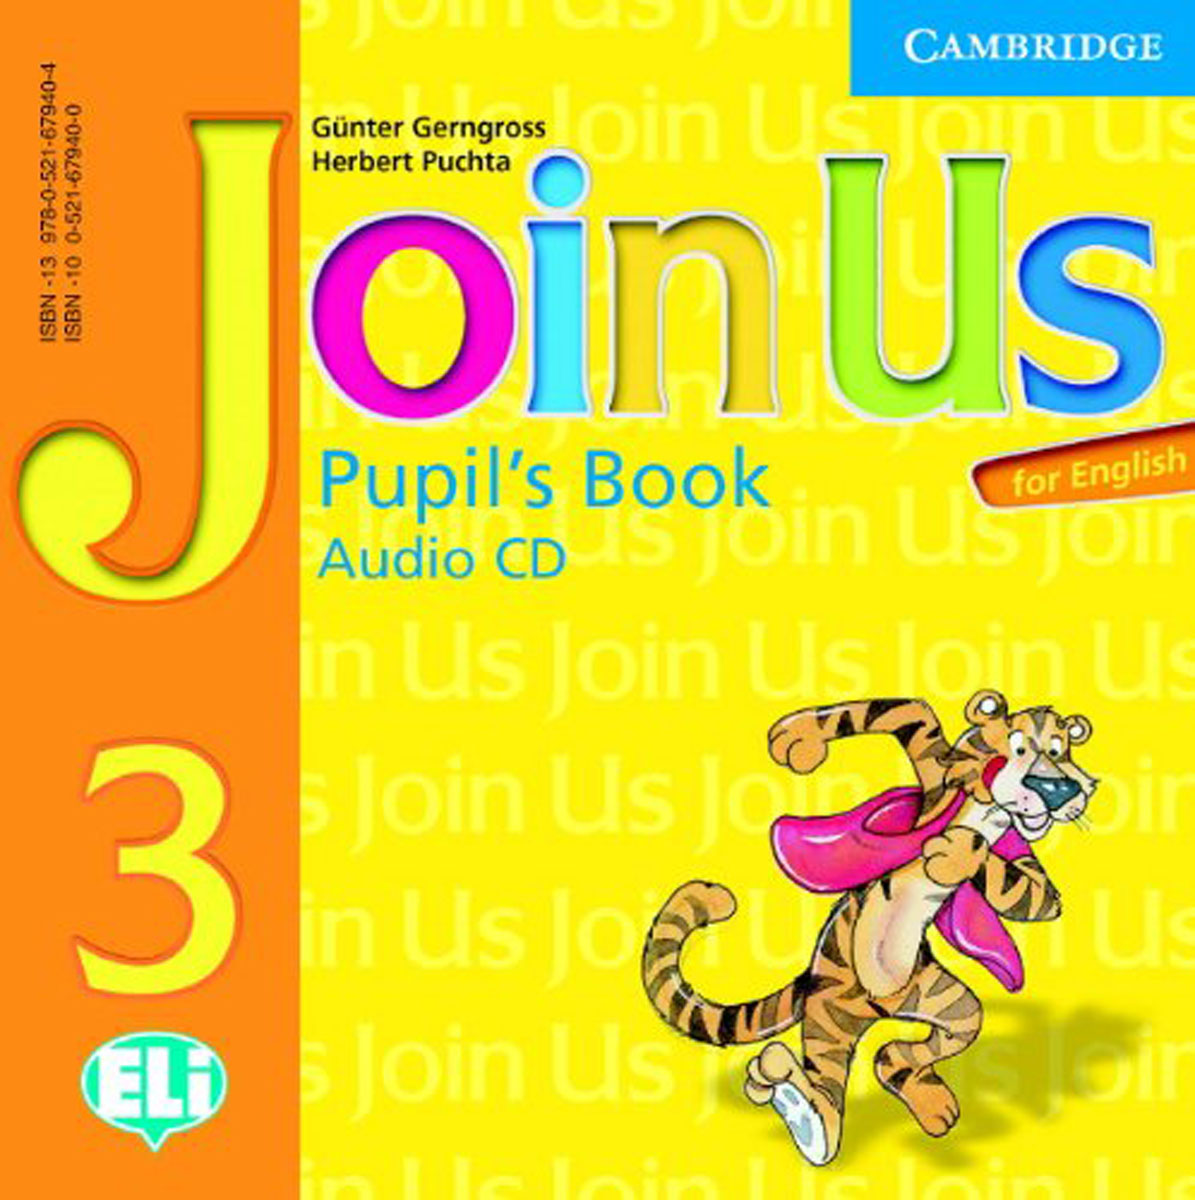 Join Us for English 3: Pupil's Book: Level 3 (+ CD) join us for english 3 pupil s book level 3 cd